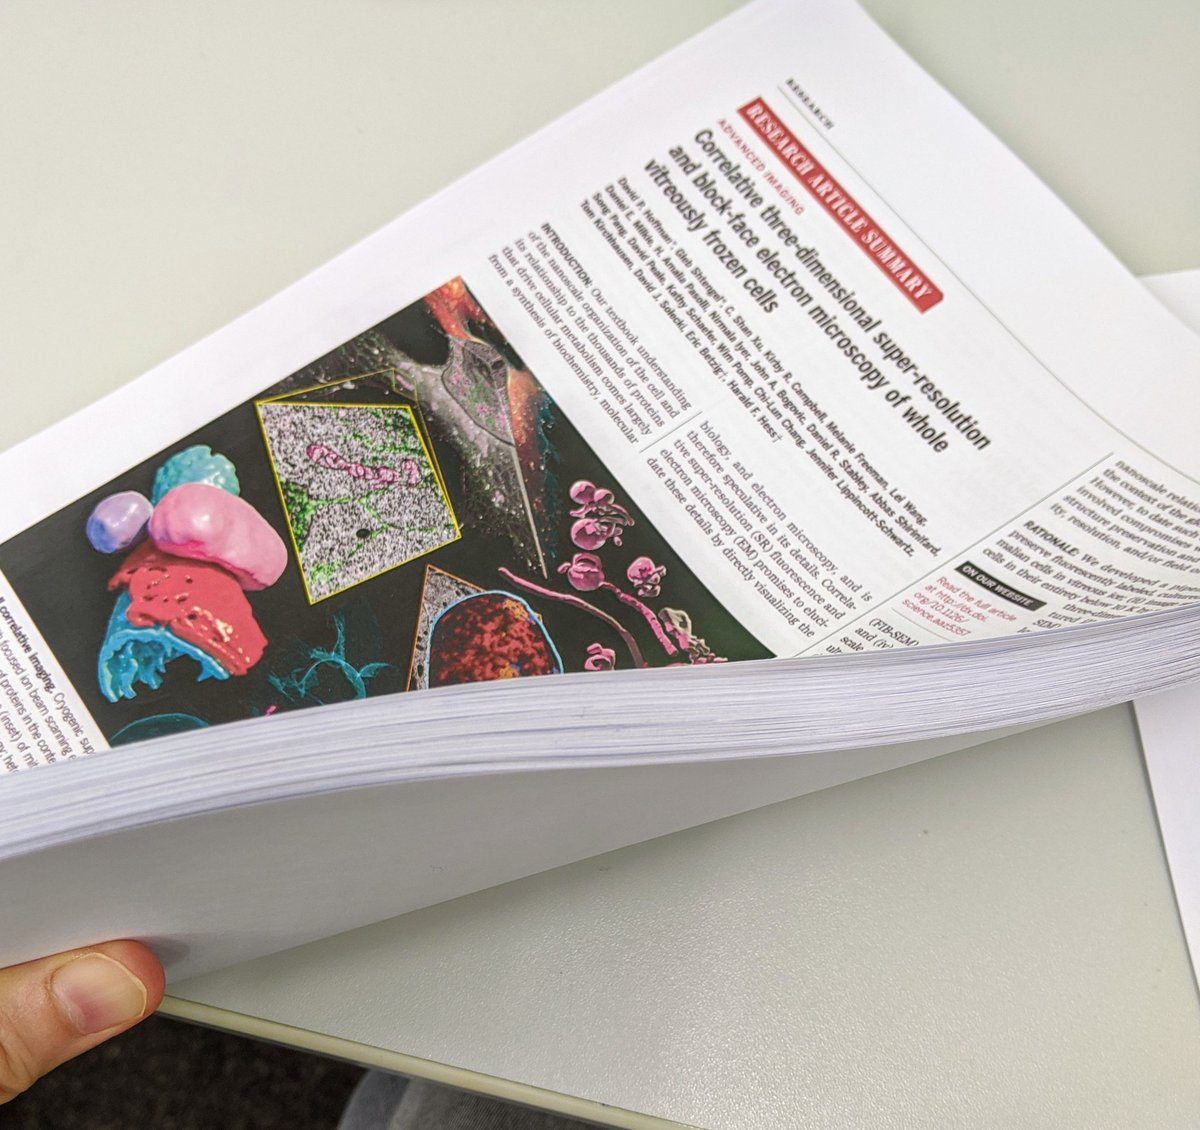 This is how thick a hard copy of a #Science paper with it's supplimentary file. pic.twitter.com/xVCos0RbMR